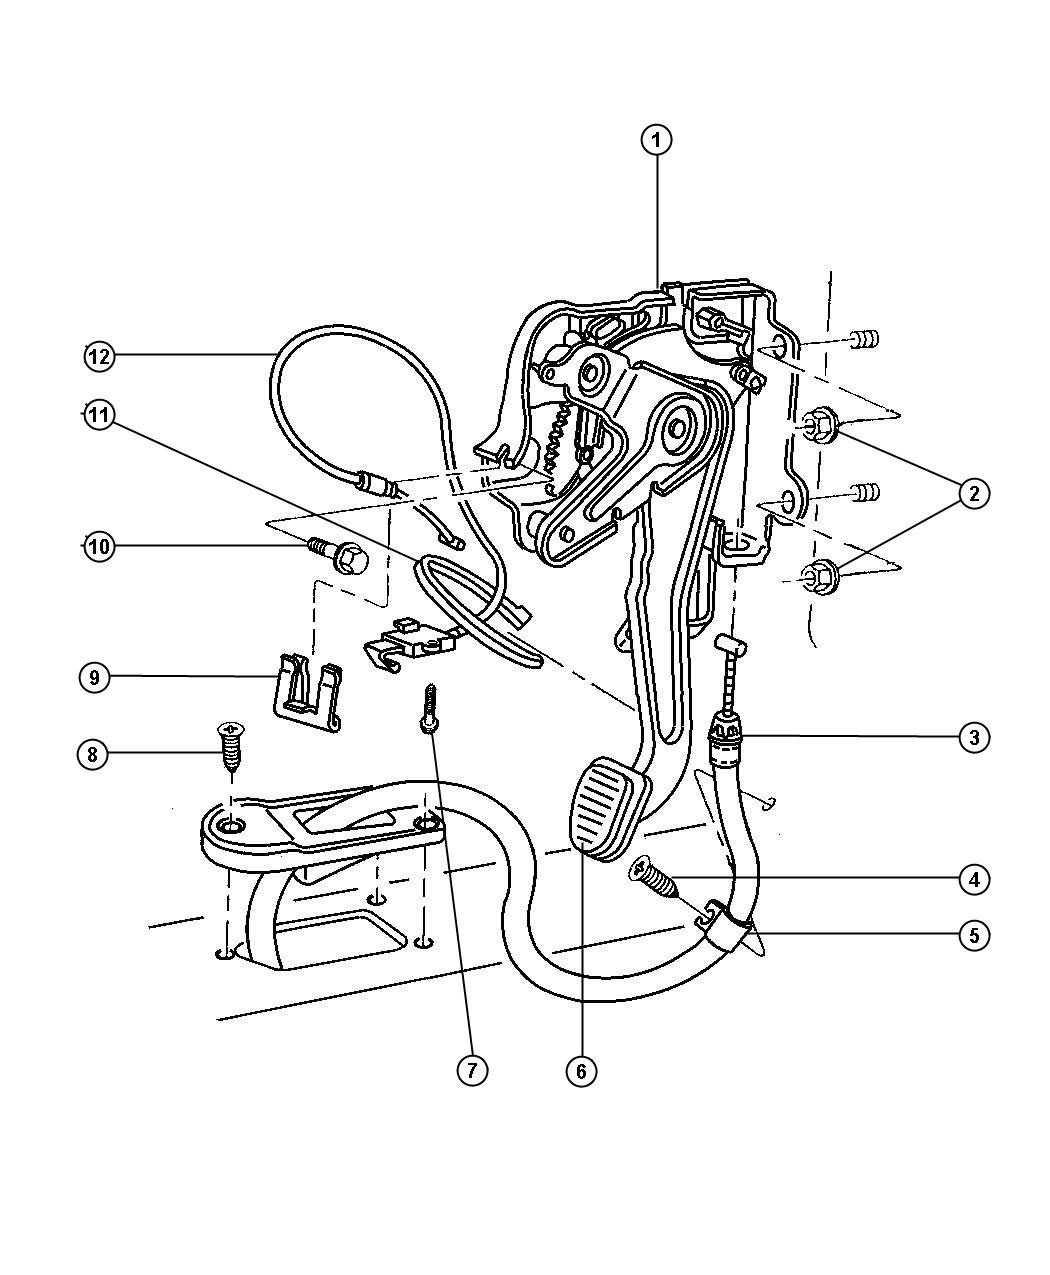 1999 dodge ram 1500 brake line diagram pictures to pin on pinterest